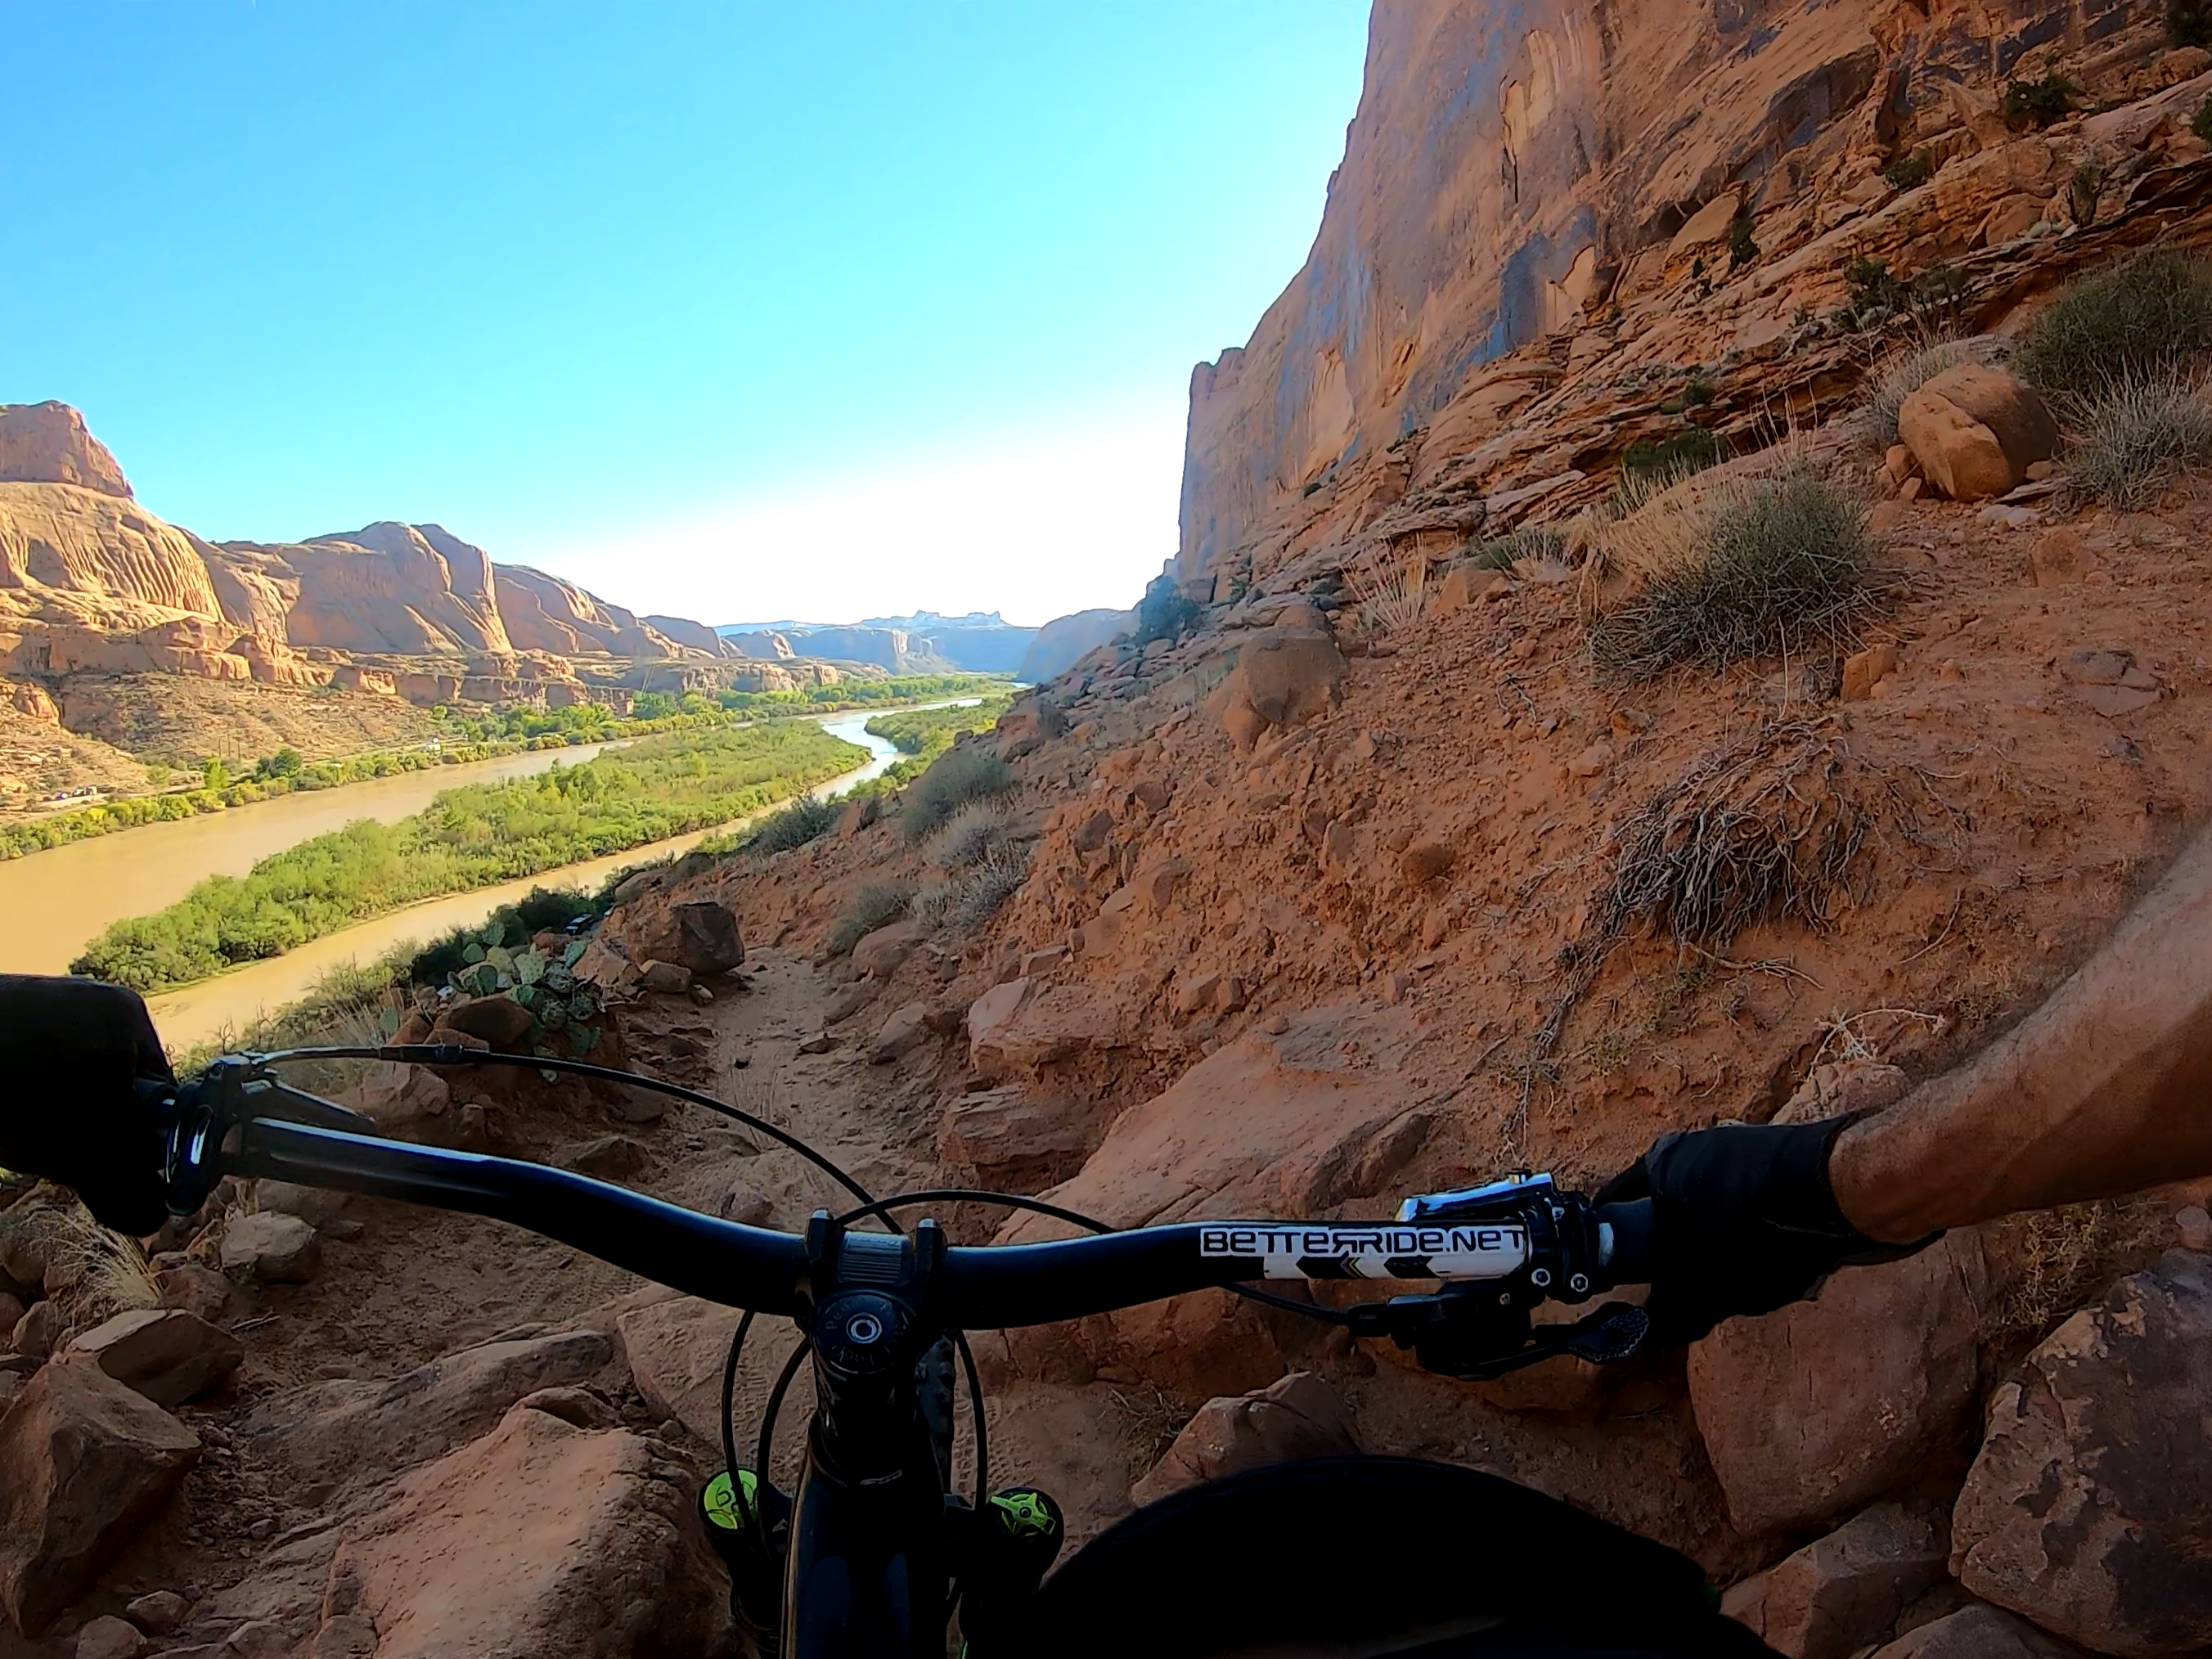 Challenging Mountain Bike Trails Should be Ridden with Skills, Not Balls MTB Video